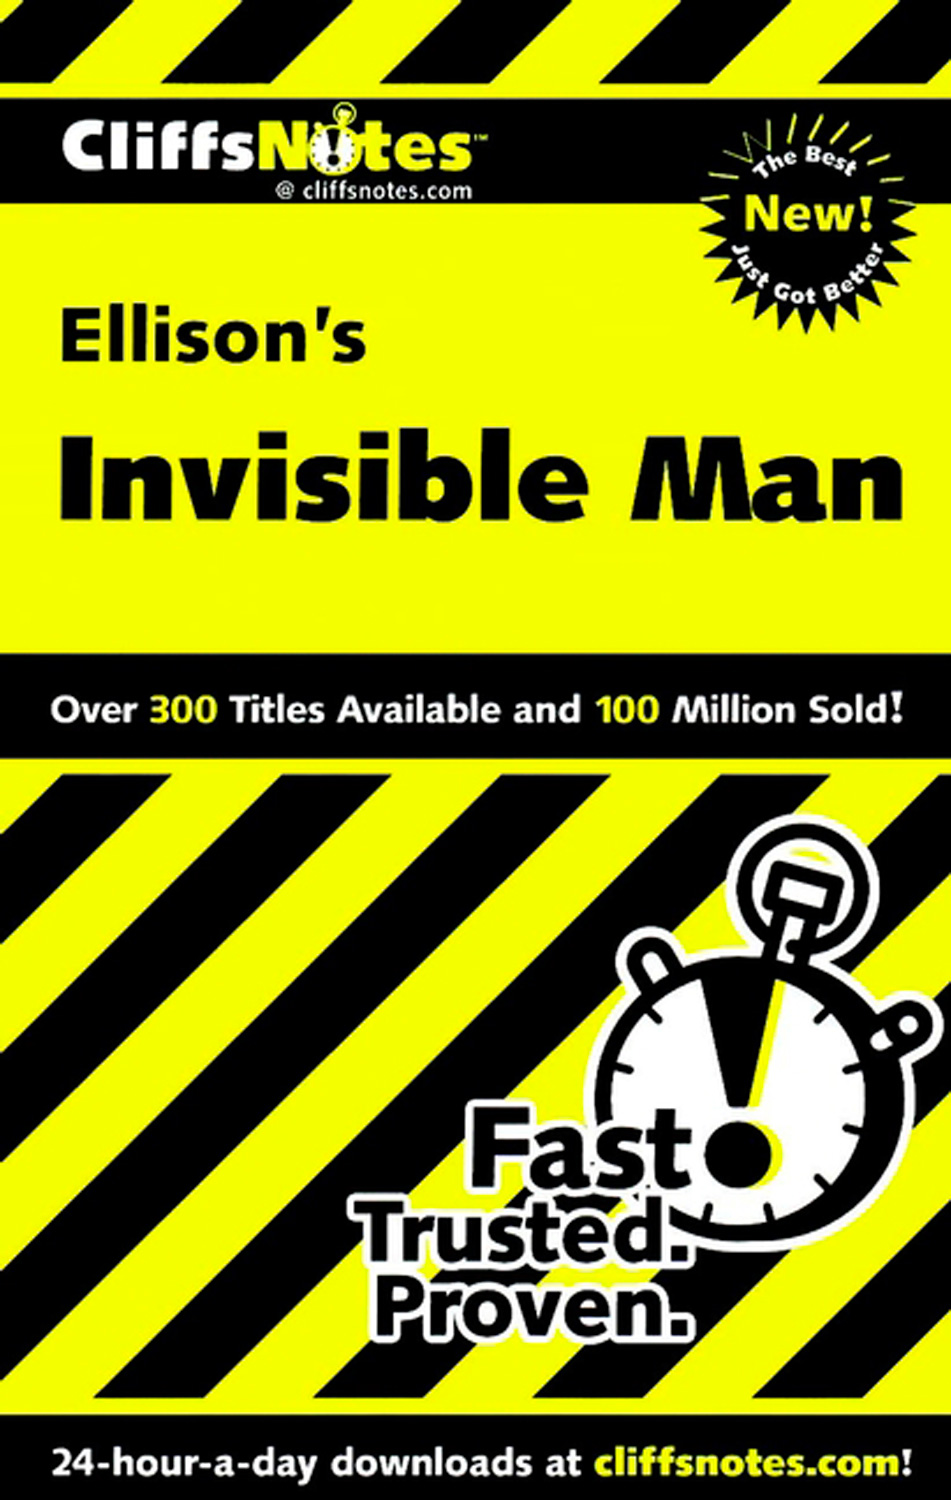 CliffsNotes on Ellison's Invisible Man-9780764586569